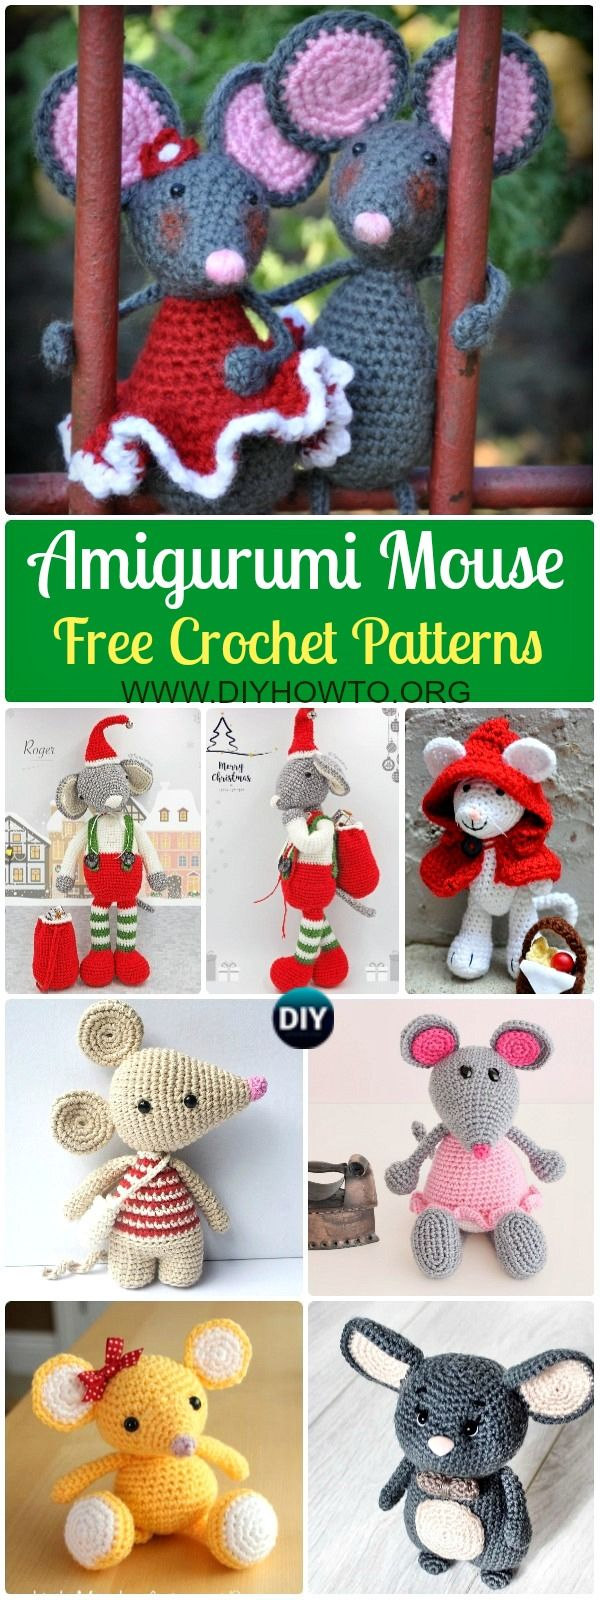 14986 best crochet 6 images on pinterest dolls crafts and amigurumi crochet mouse toy softies free patterns bankloansurffo Choice Image